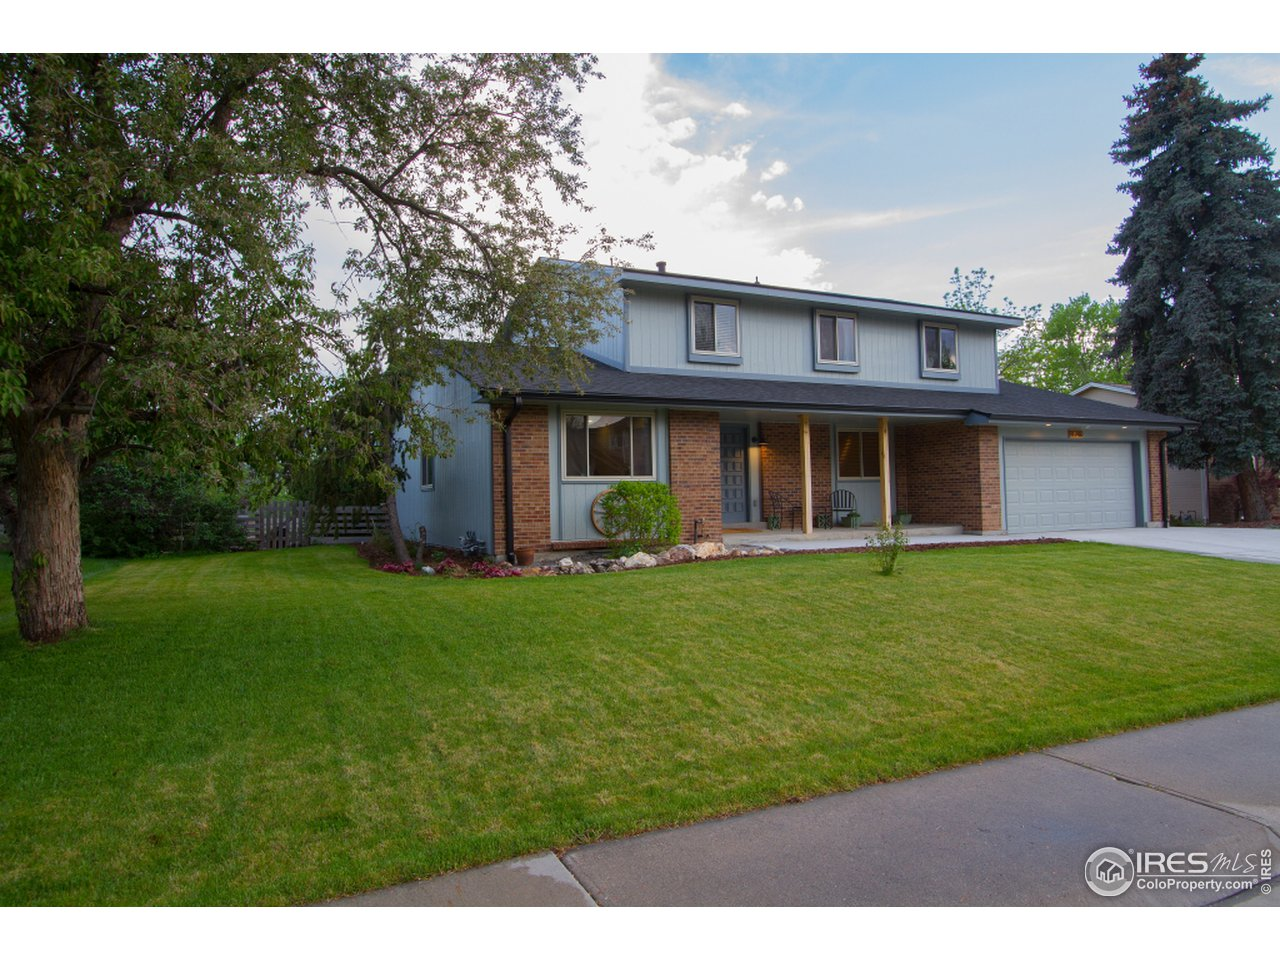 11740 W 74th Ave, Arvada CO 80005